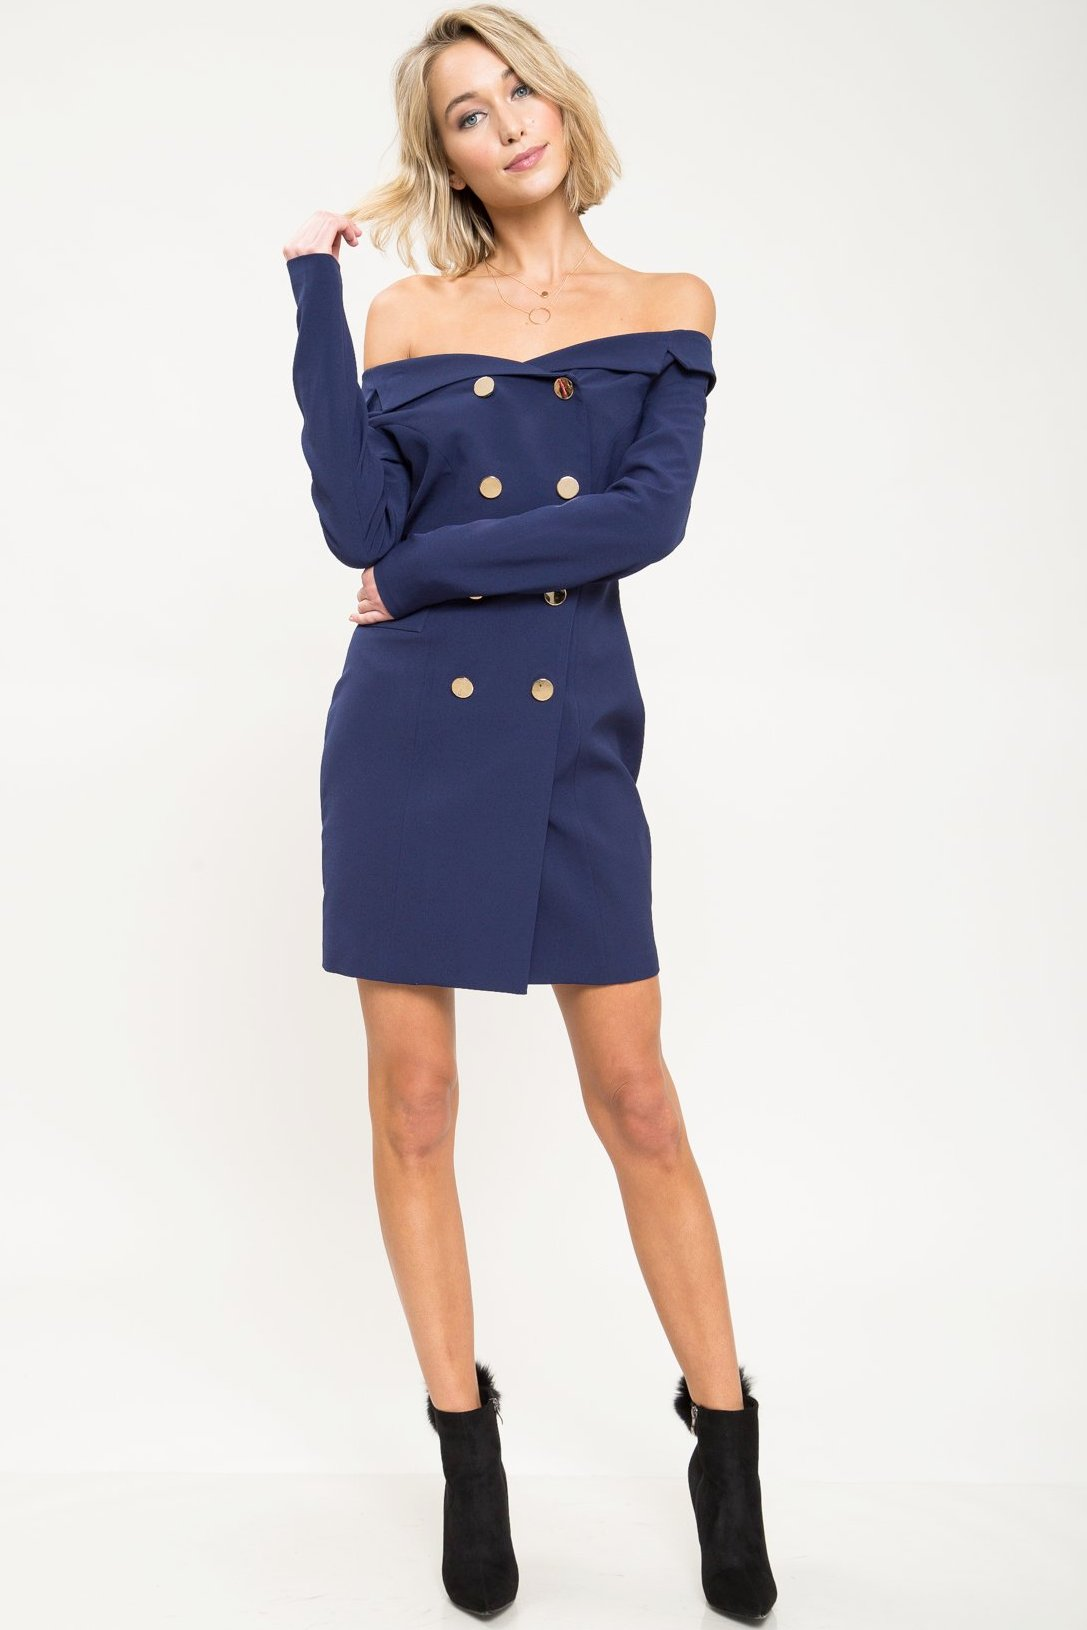 Noticed Off Shoulder Blazer Dress - Geegeebae